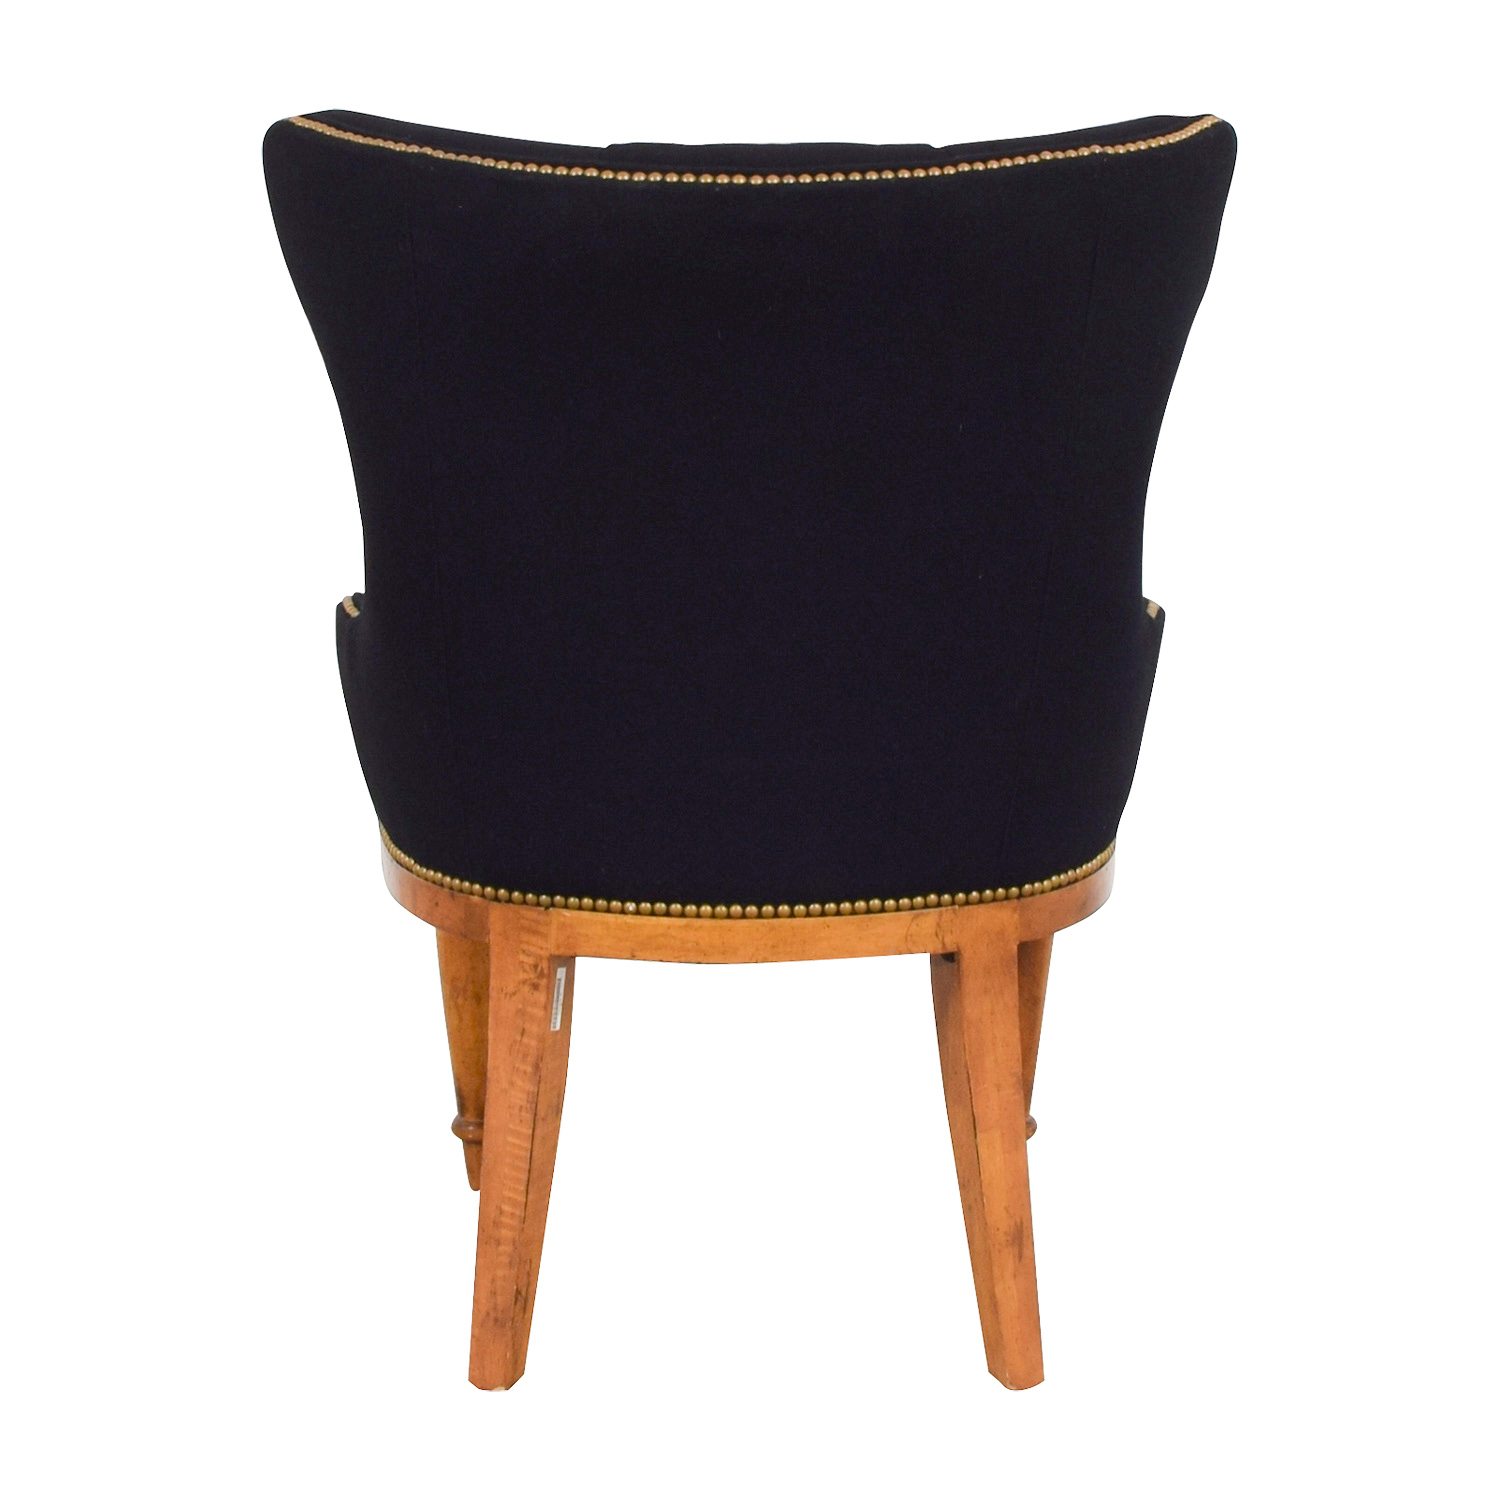 buy Furniture Masters Black Tufted Nailhead and Wood Accent Chair Furniture Masters Chairs